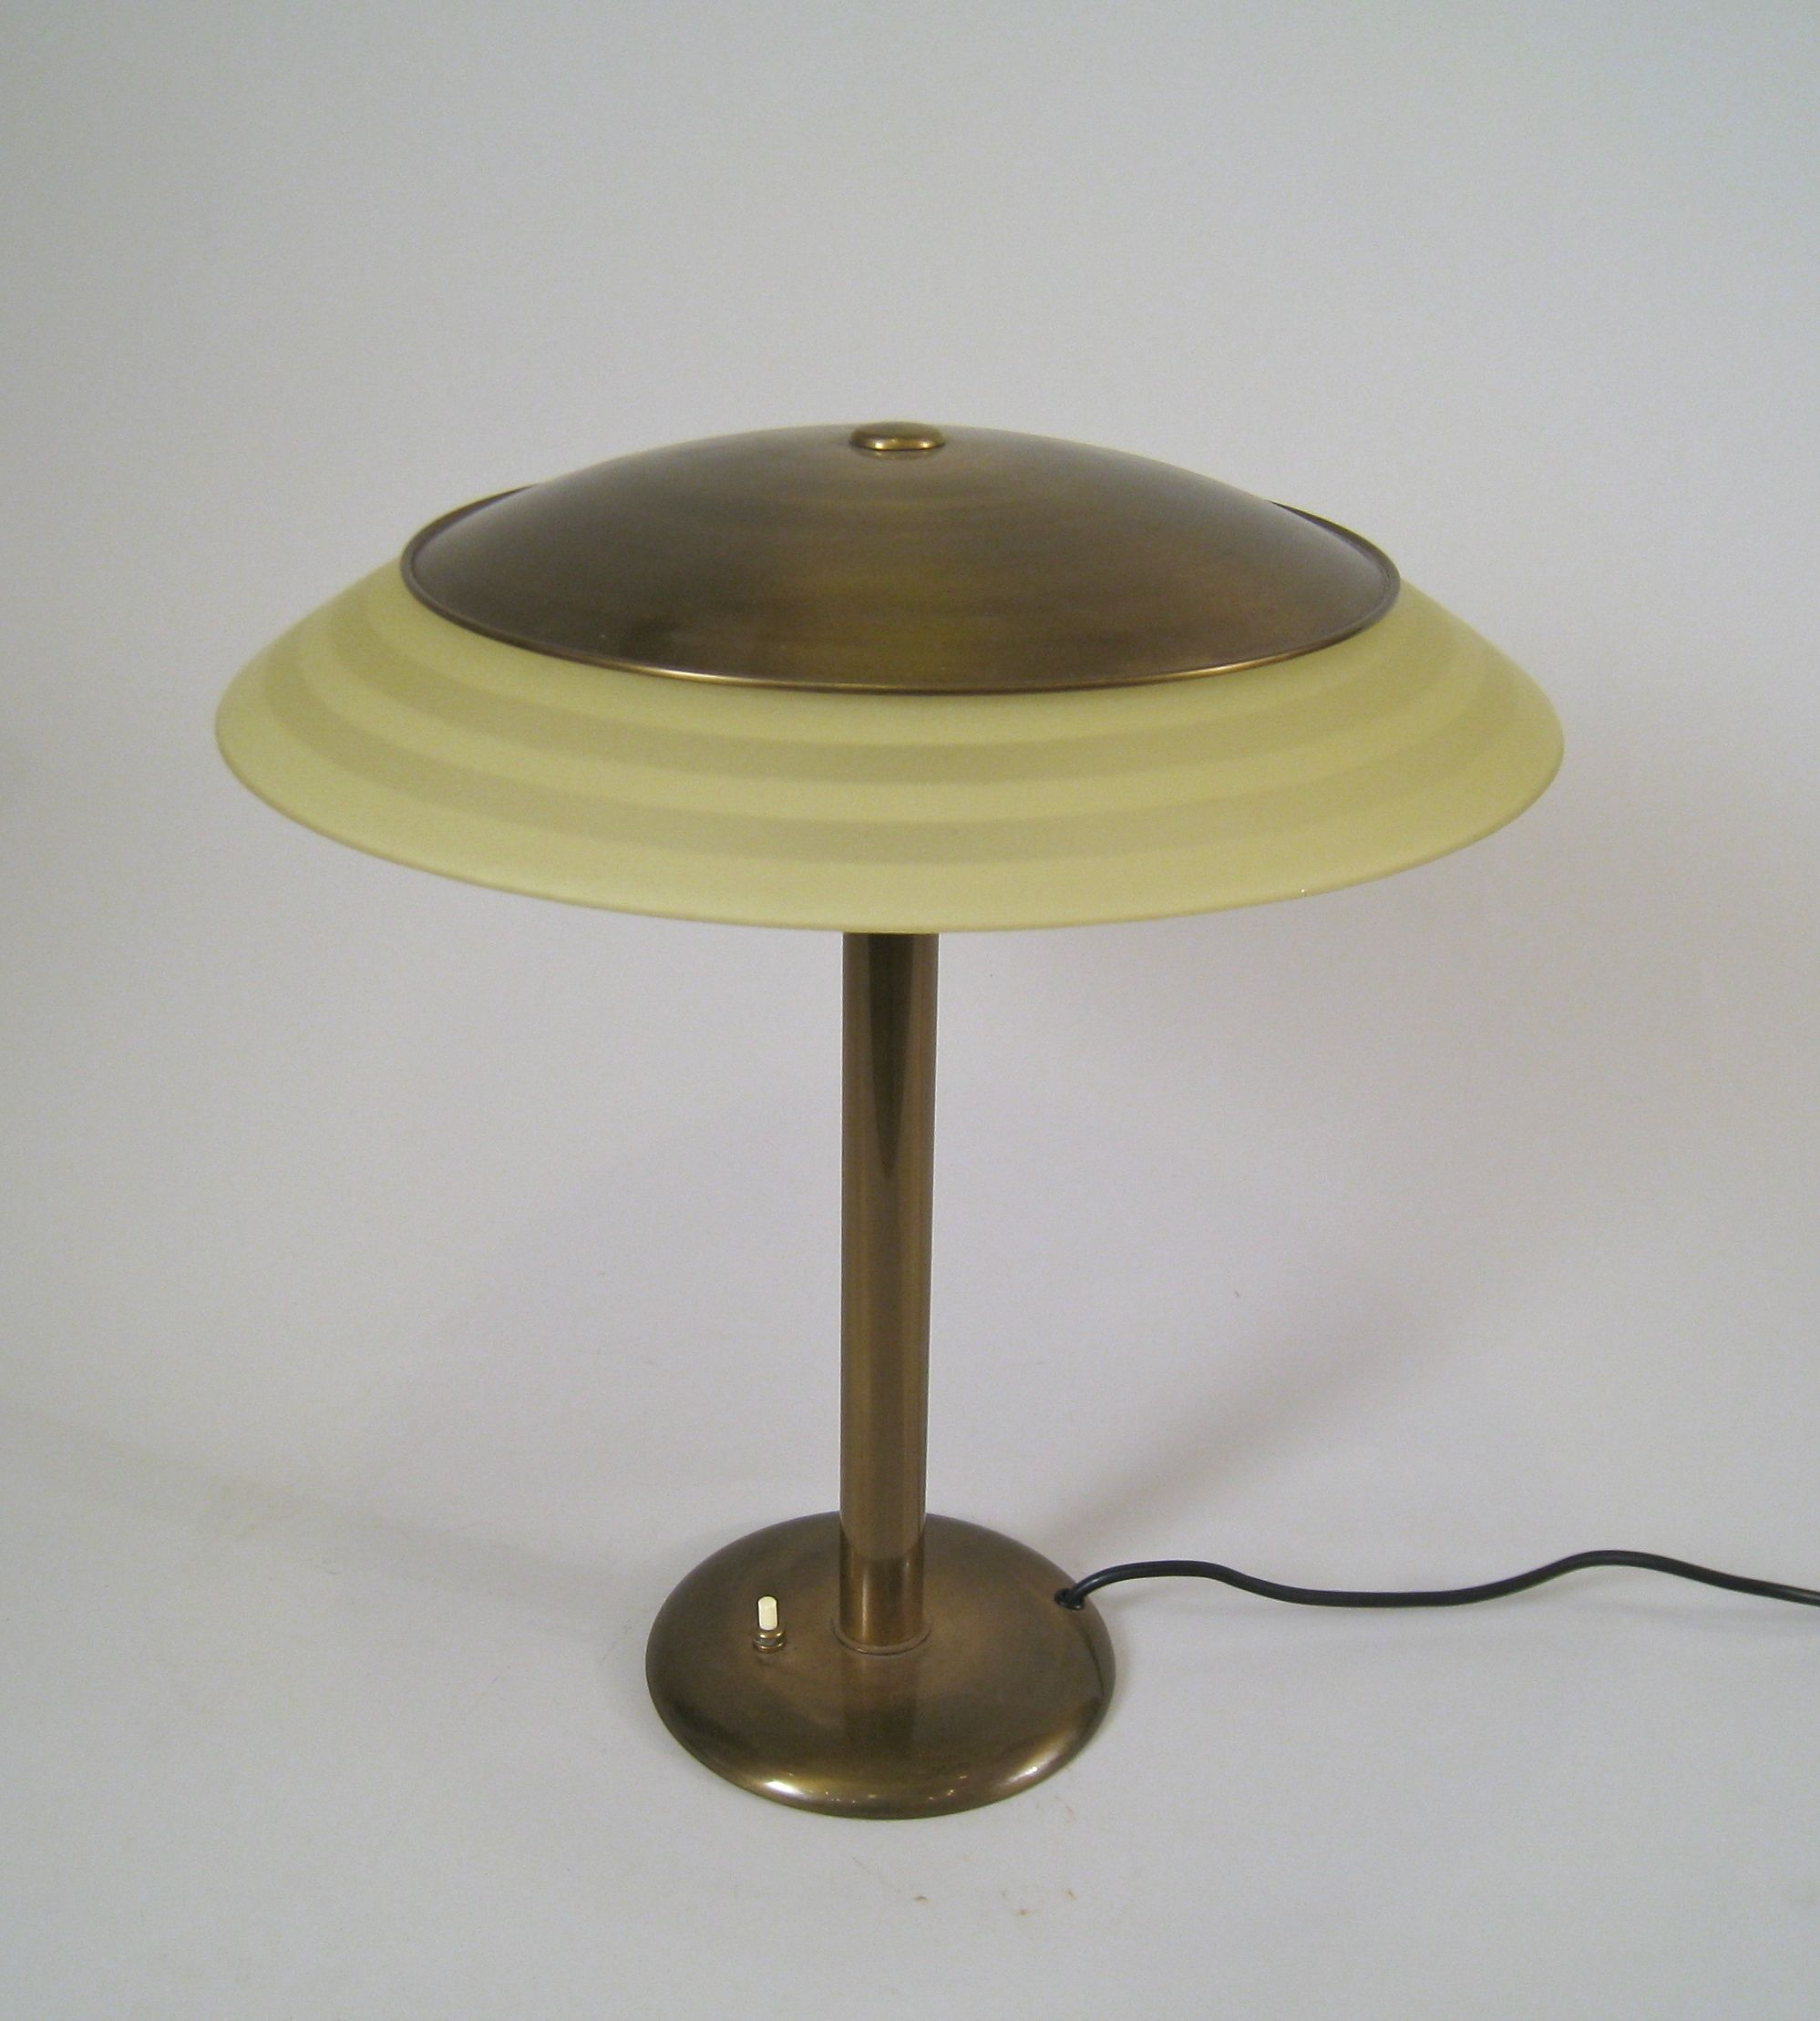 Cheap makeover to get a room purchase a table lamp